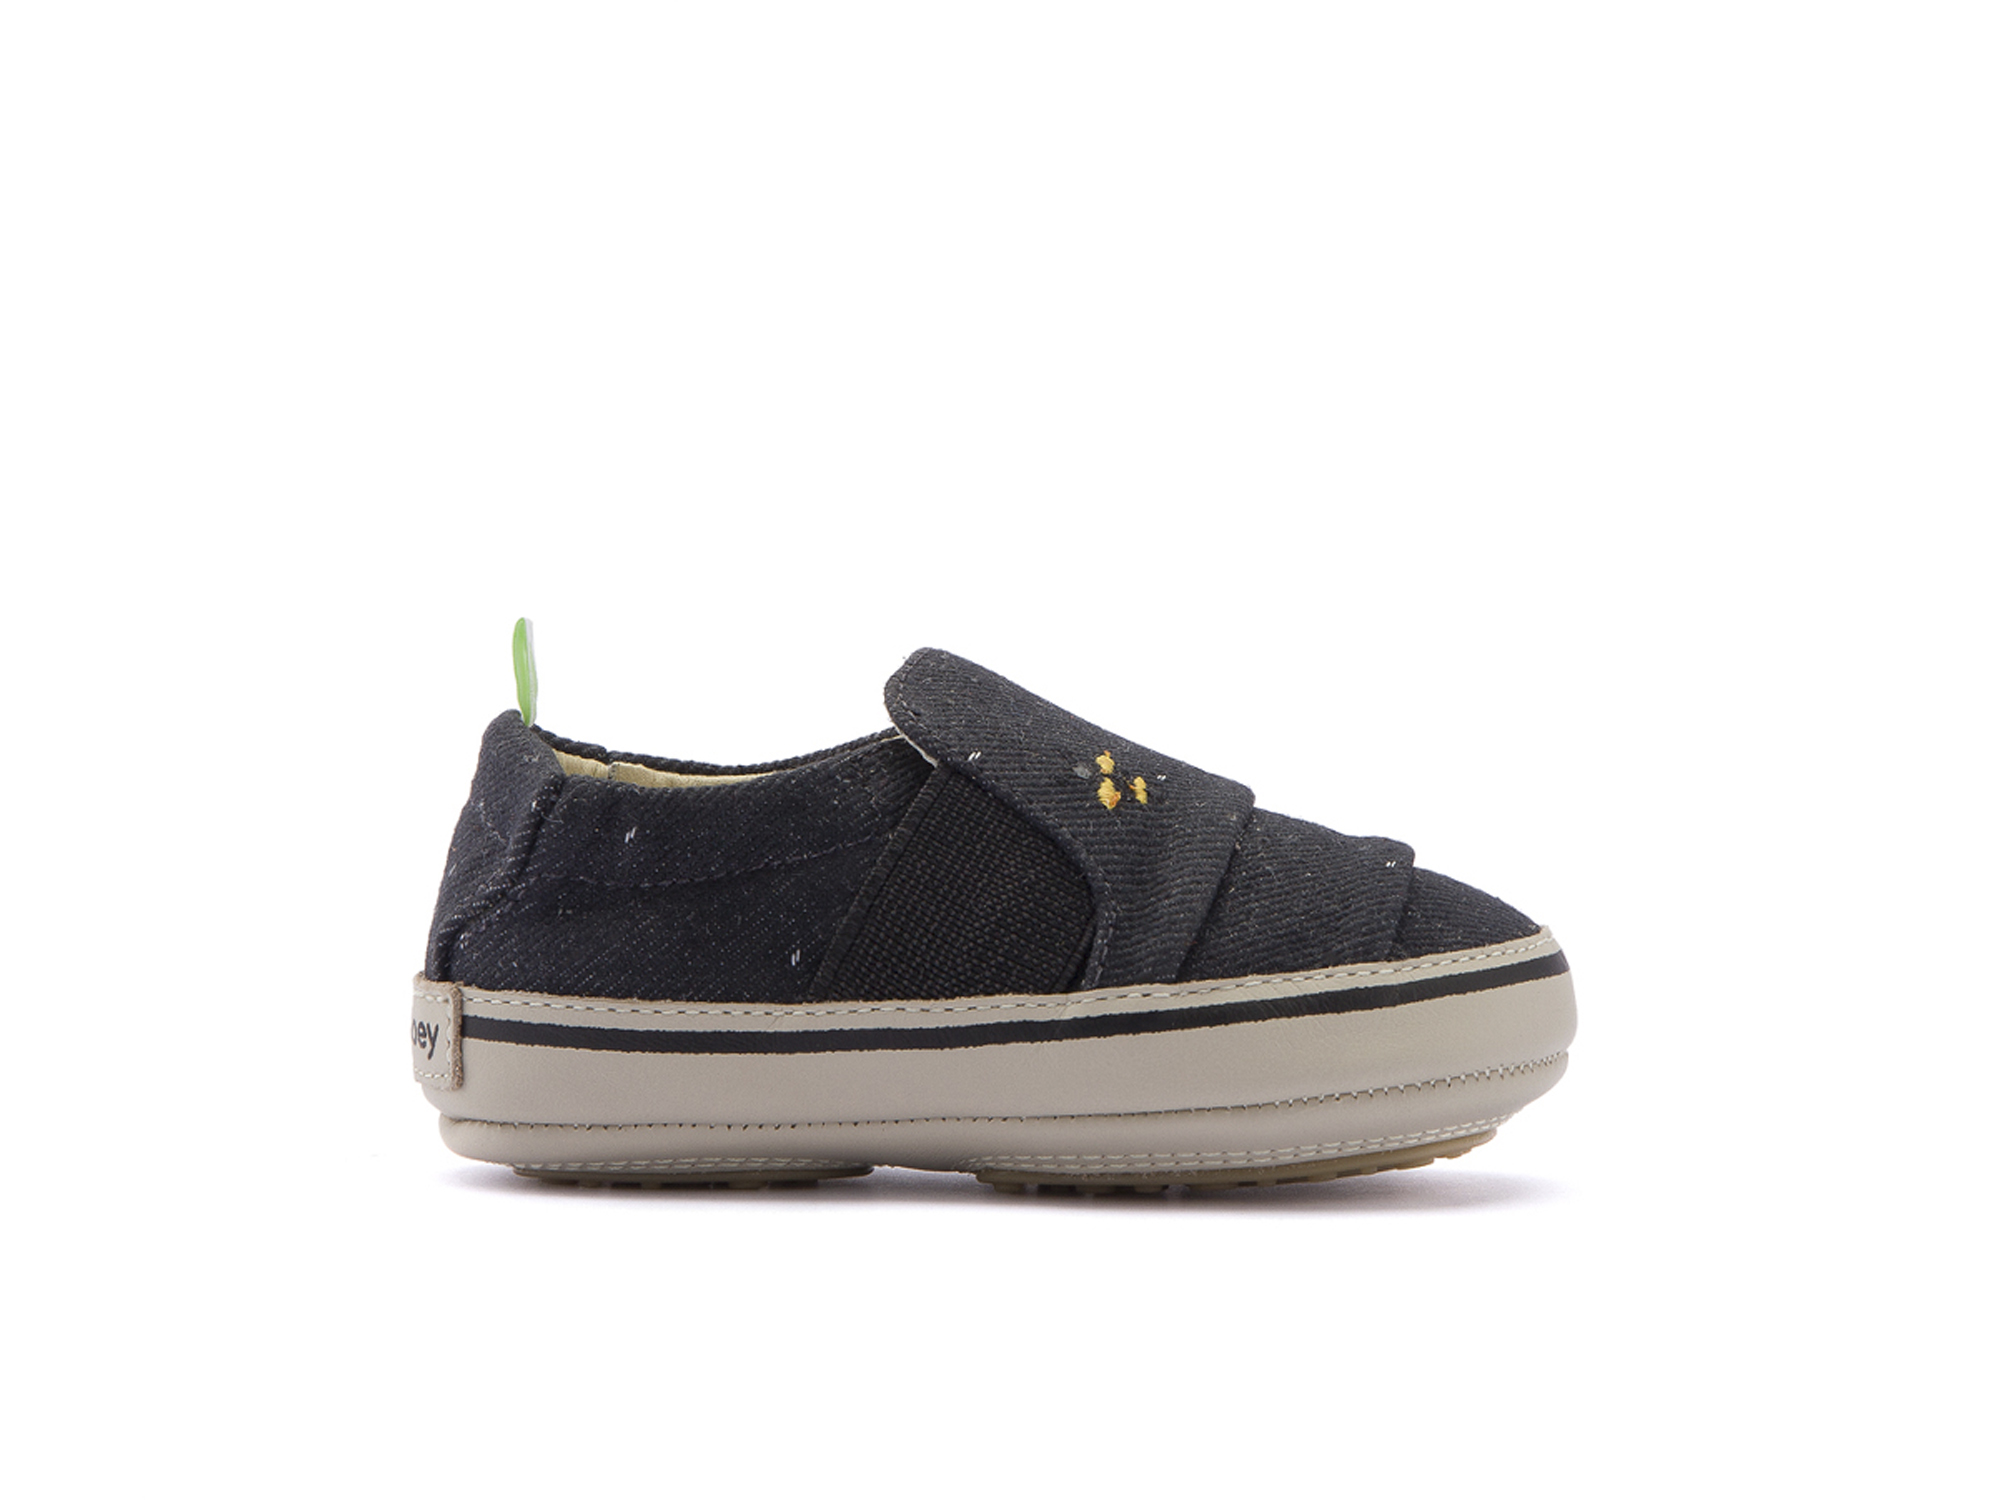 Tênis Slippy Black Space Canvas Beeswax/ Pumice Baby 0 à 2 anos - 1